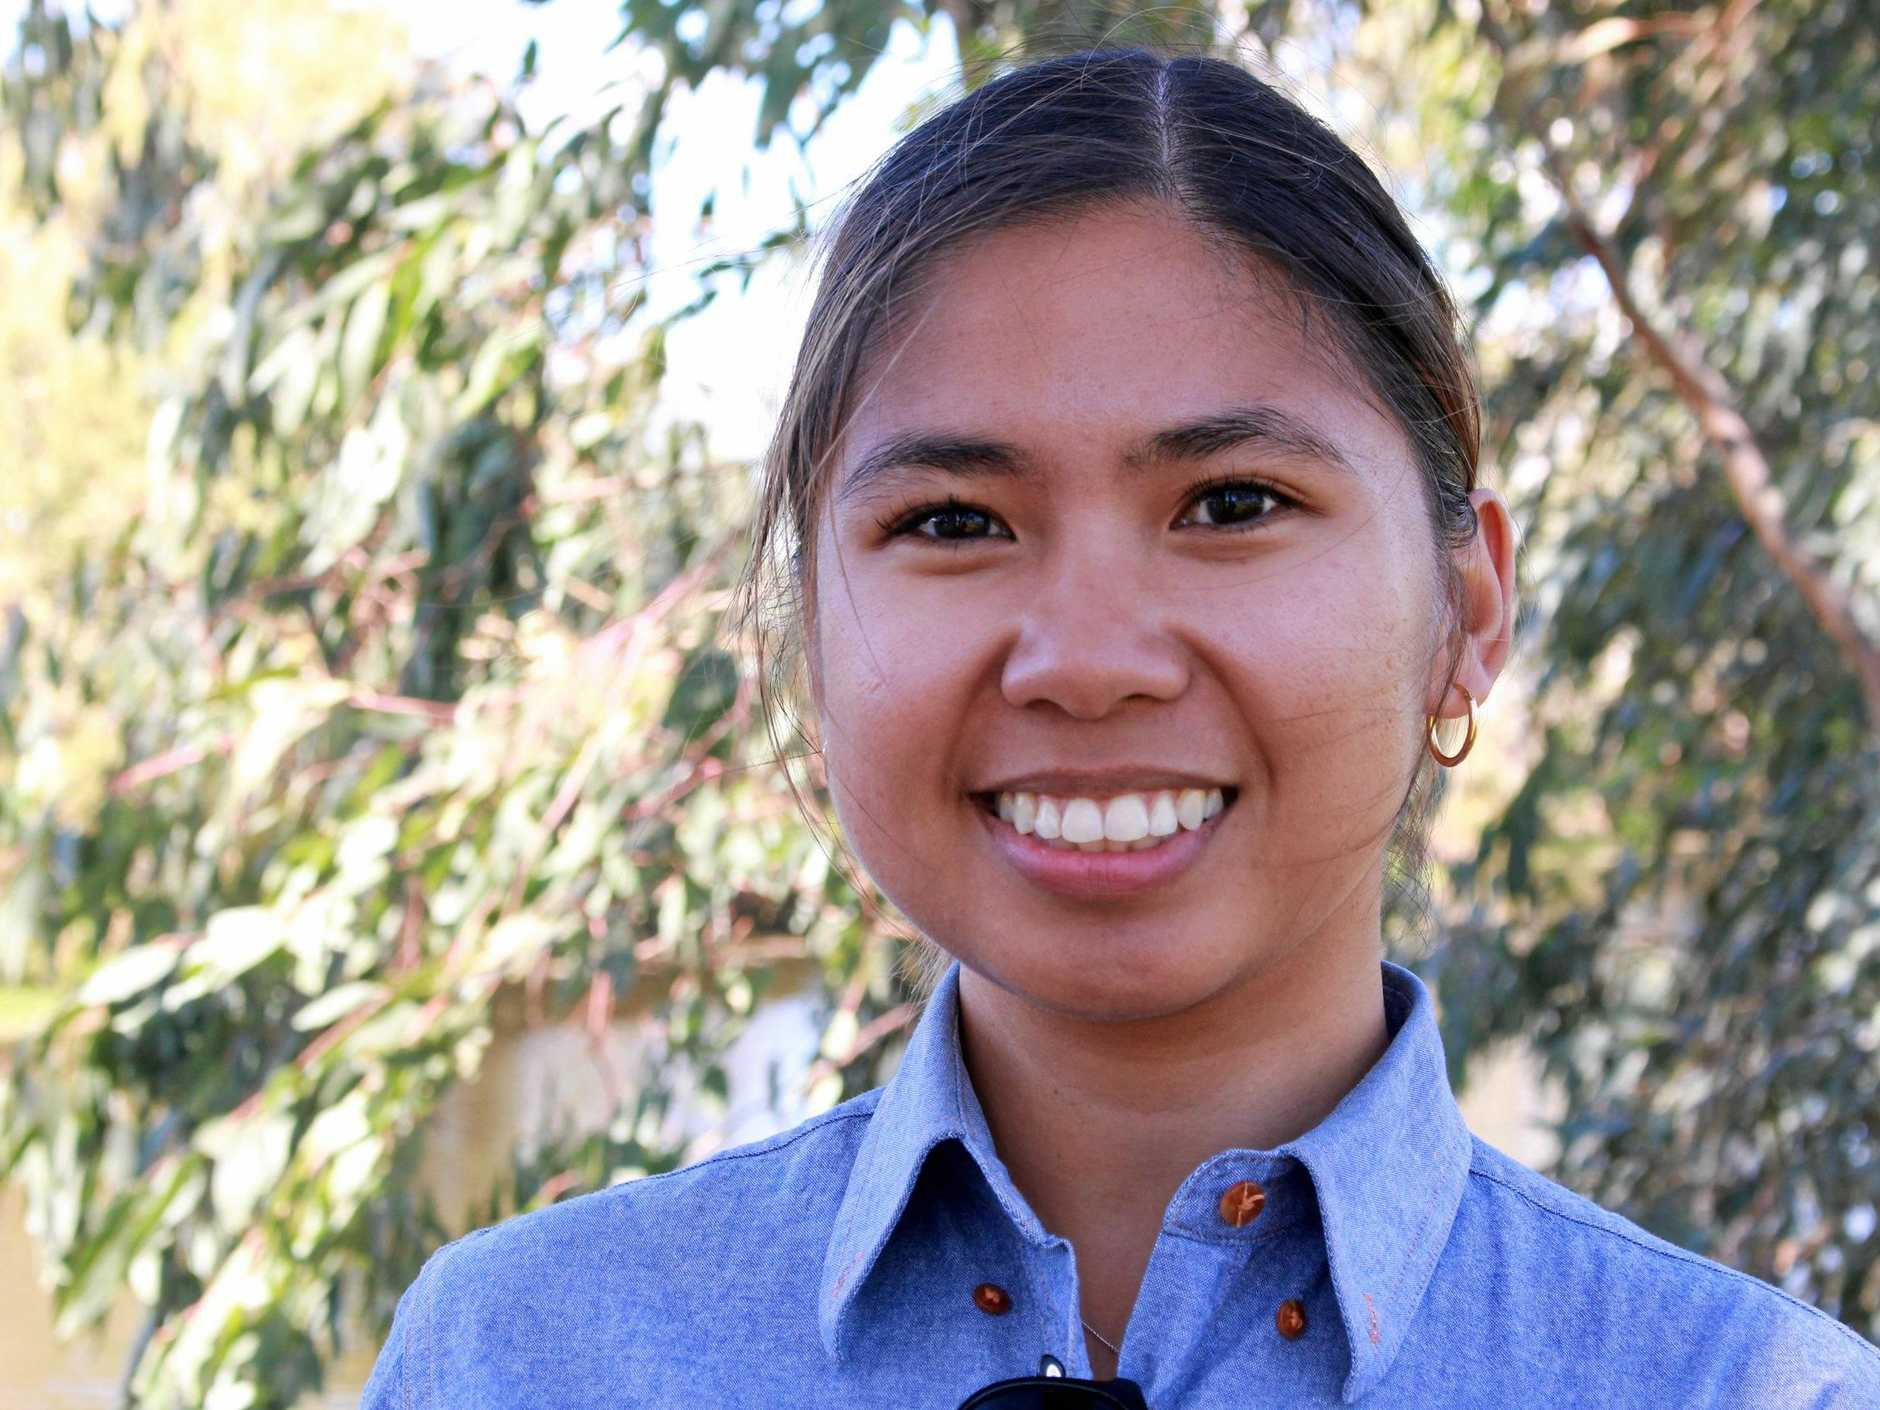 Warwick civil engineer Arielle Bangalan is calling for more acceptance of 'morena' (tan skinned) women in Filipino culture.